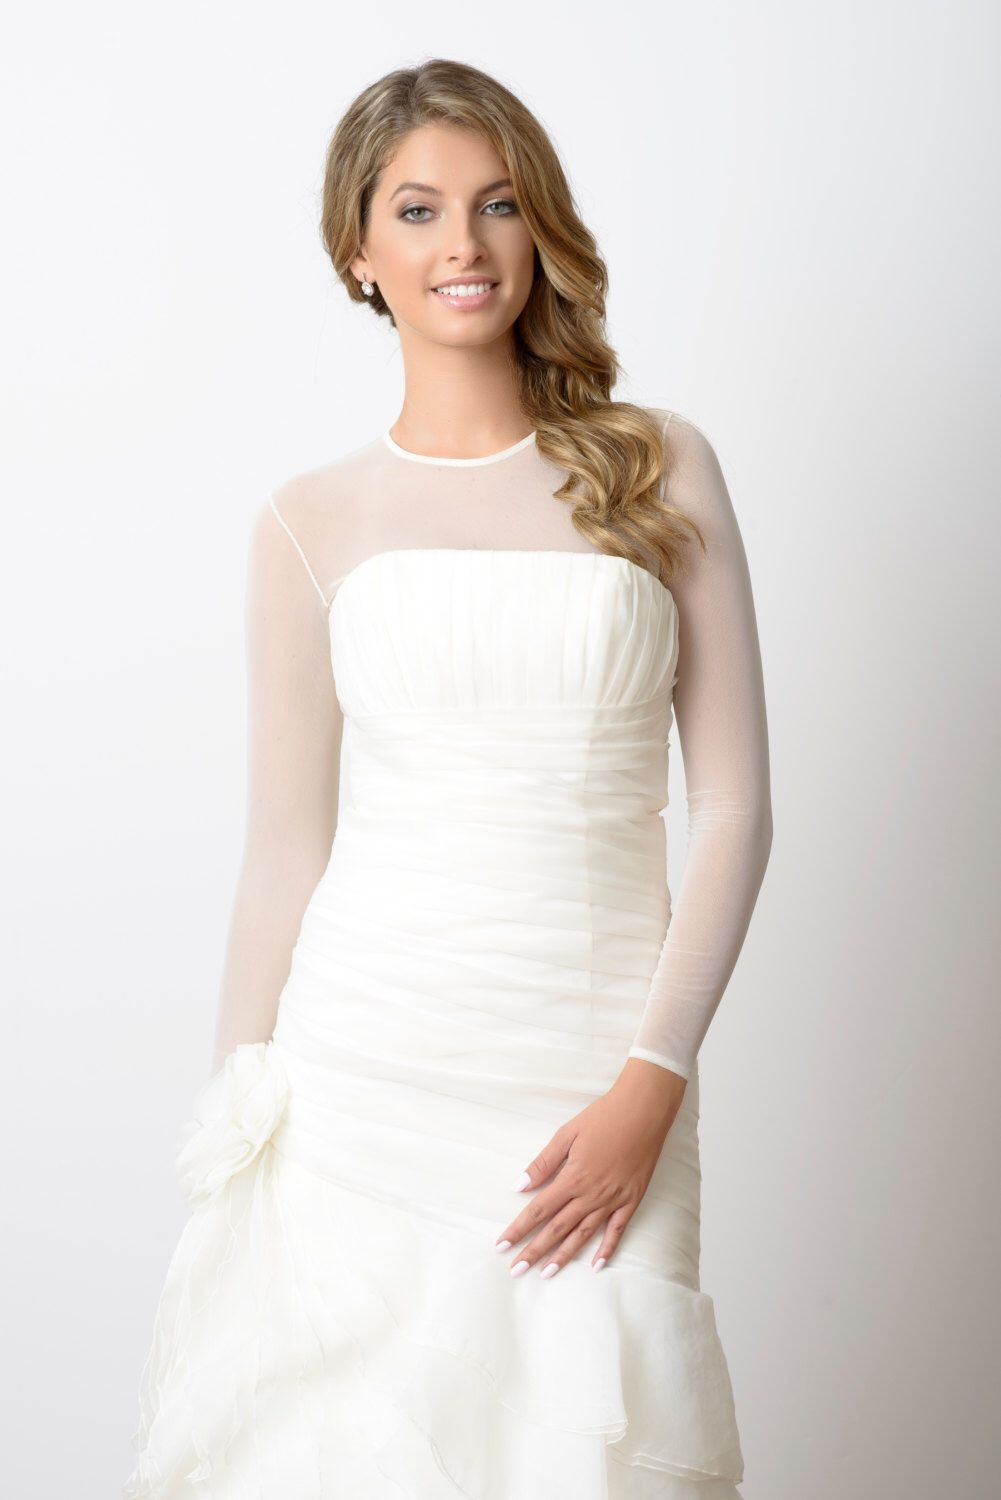 10+ Strapless wedding gown cover ups information